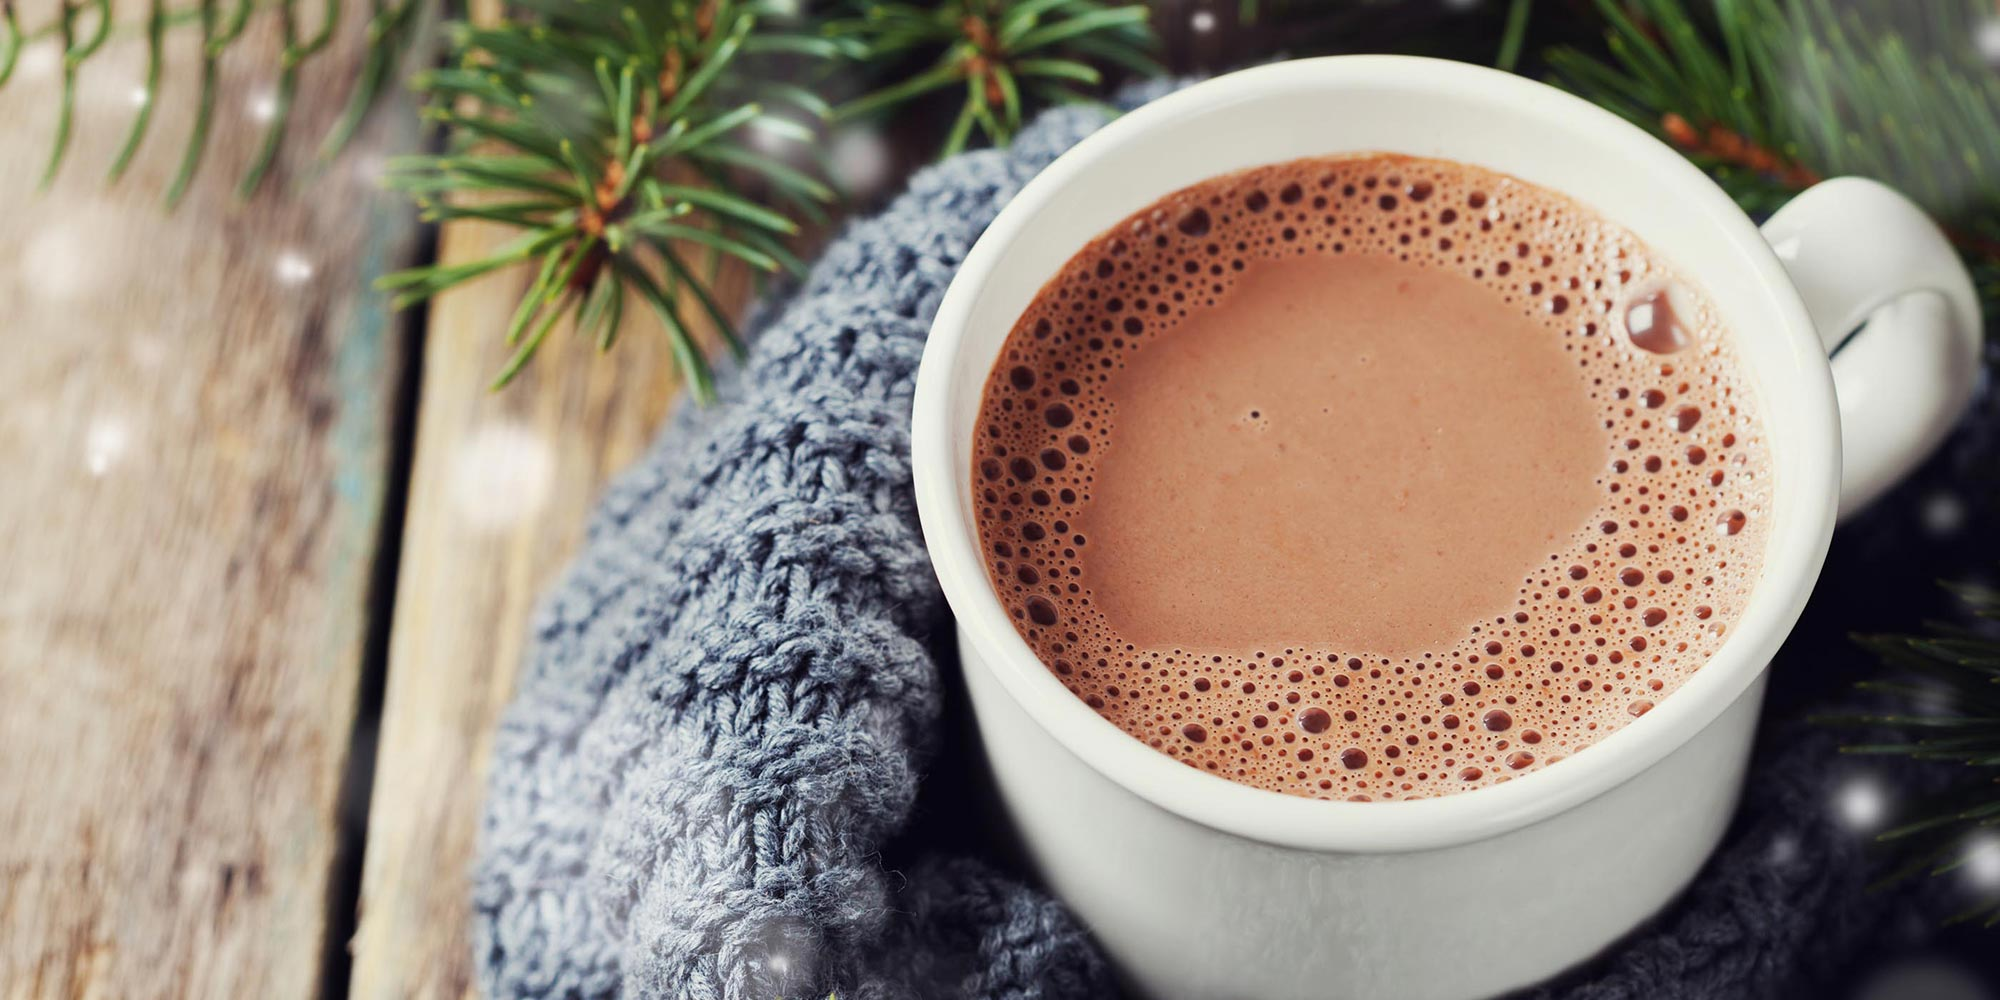 Rich And Creamy Hot Cocoa Recipe No Calorie Sweetener Sugar Substitute Splenda Sweeteners